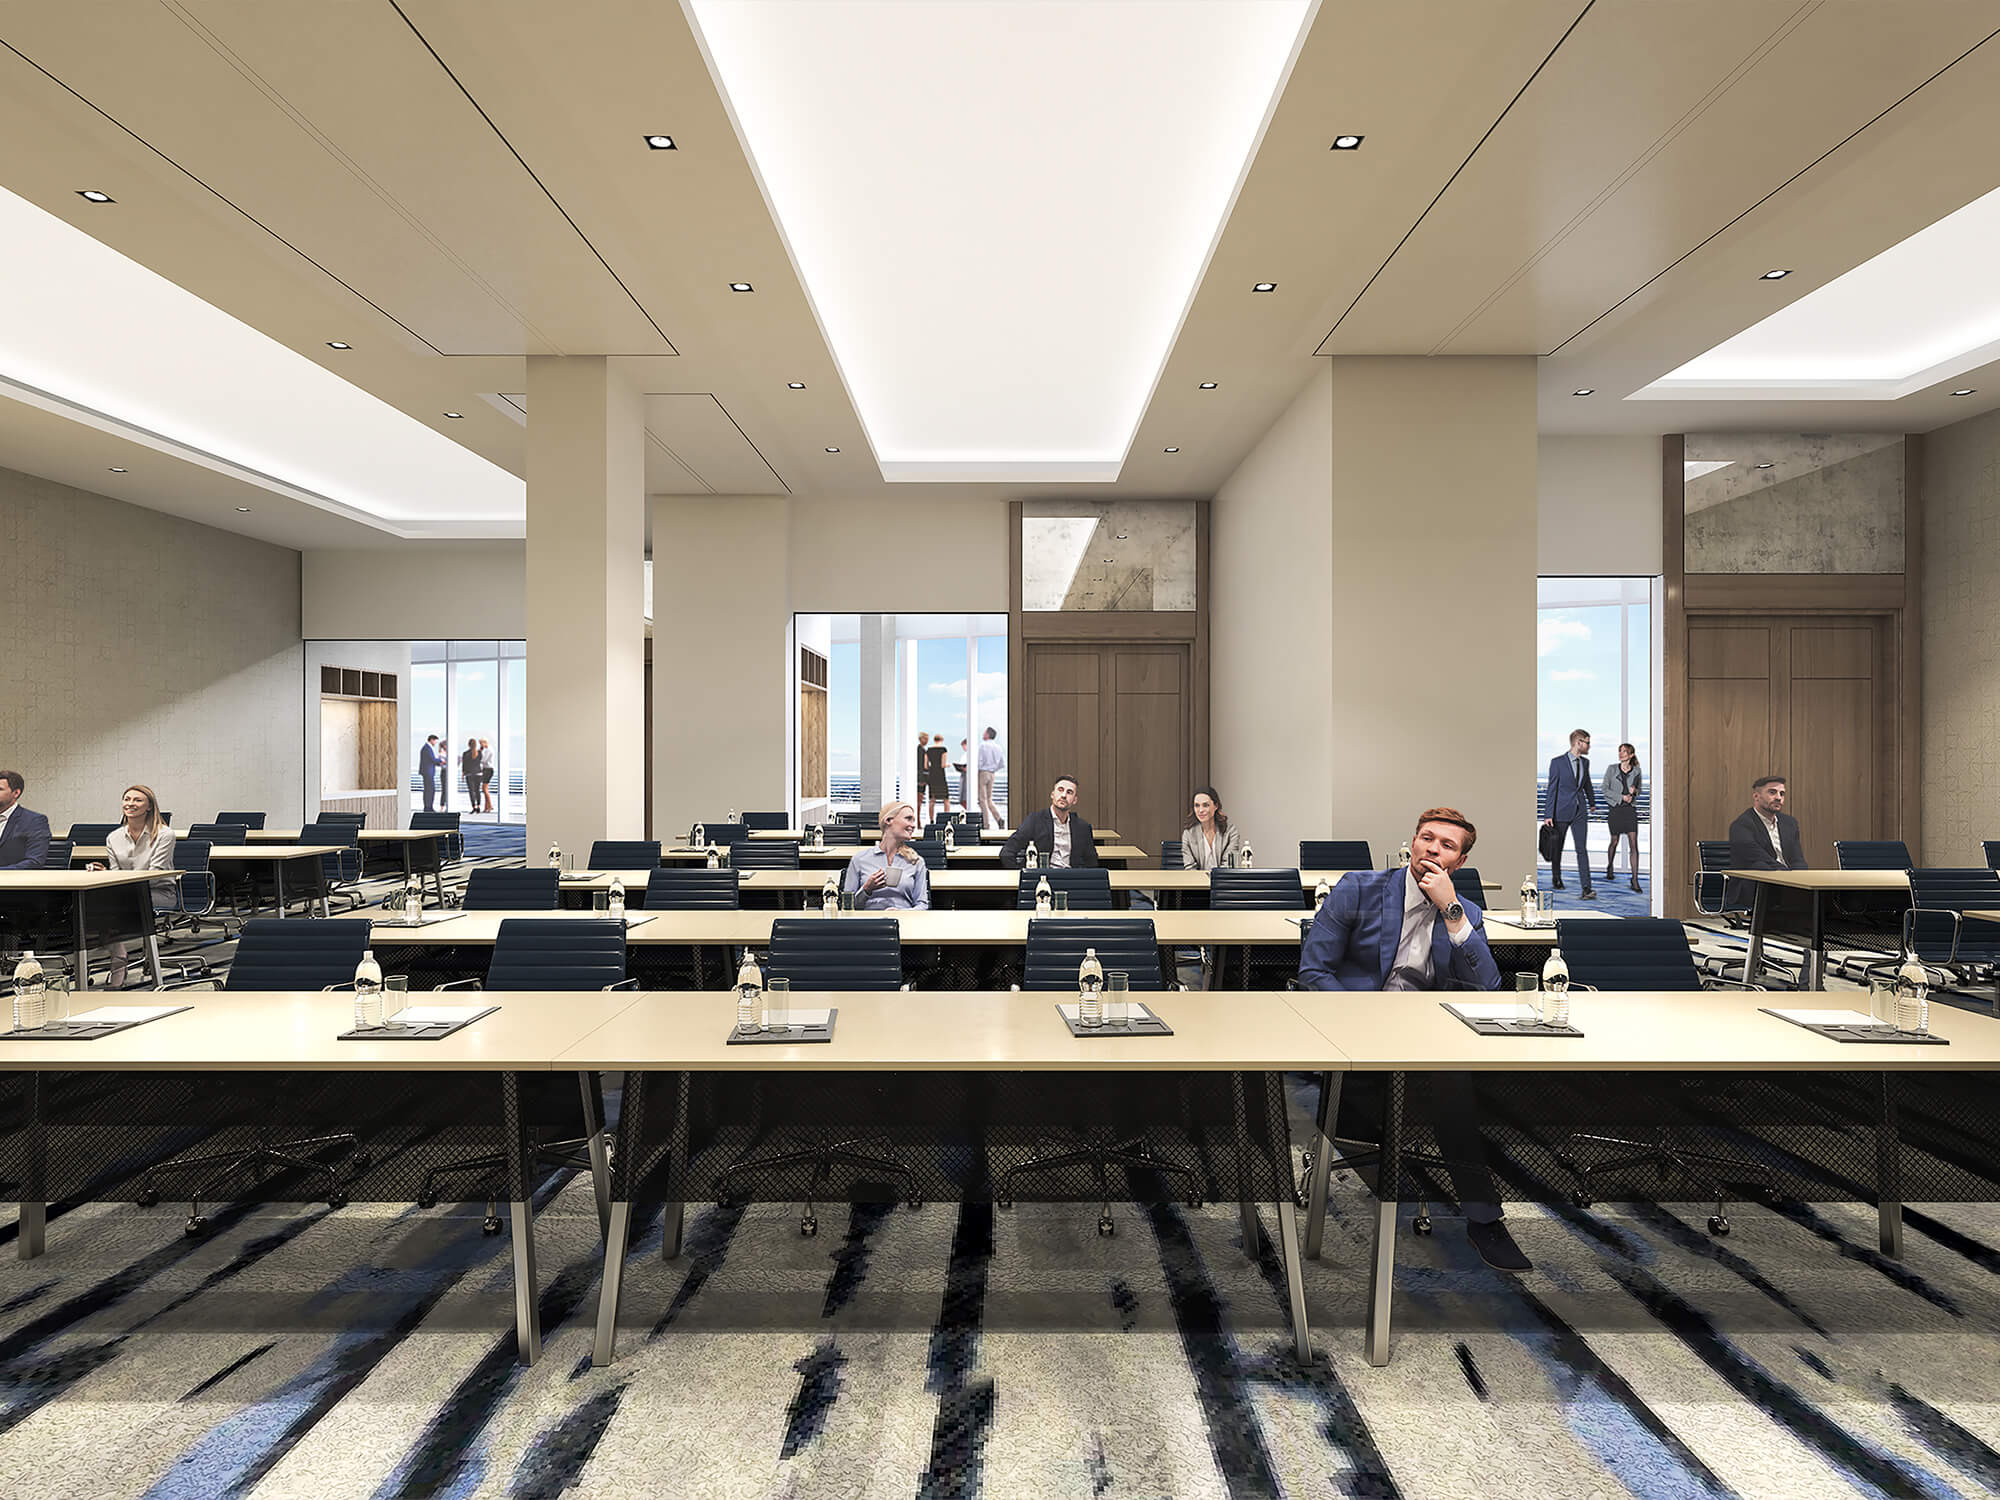 50+ Seating Conference Center with State-of-the-Art Technology